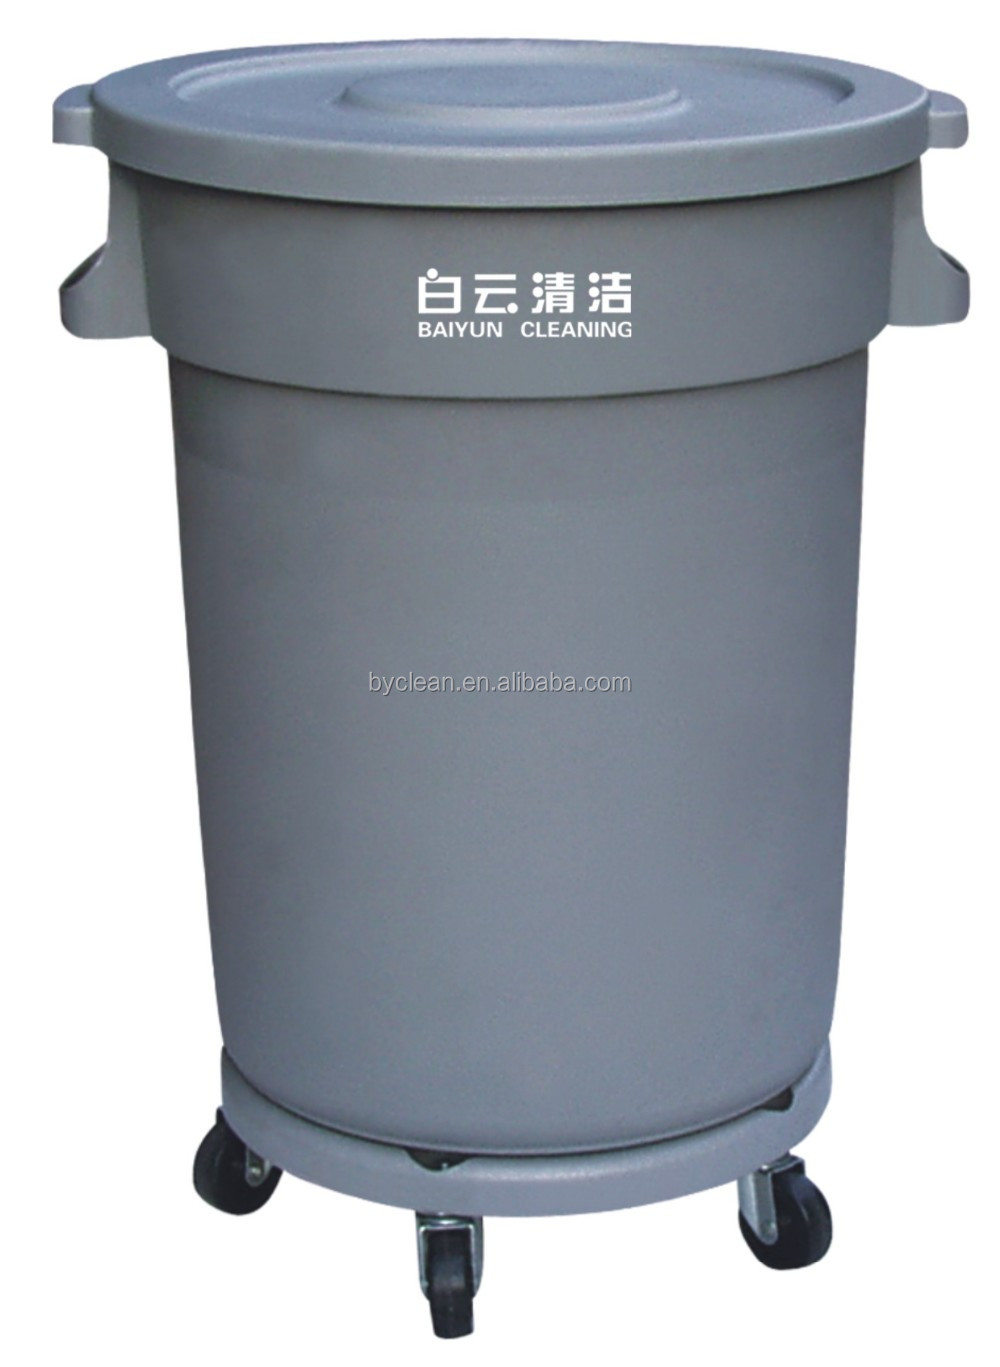 120 liter circular garbage bin with wheels / waste bin with wheels for street